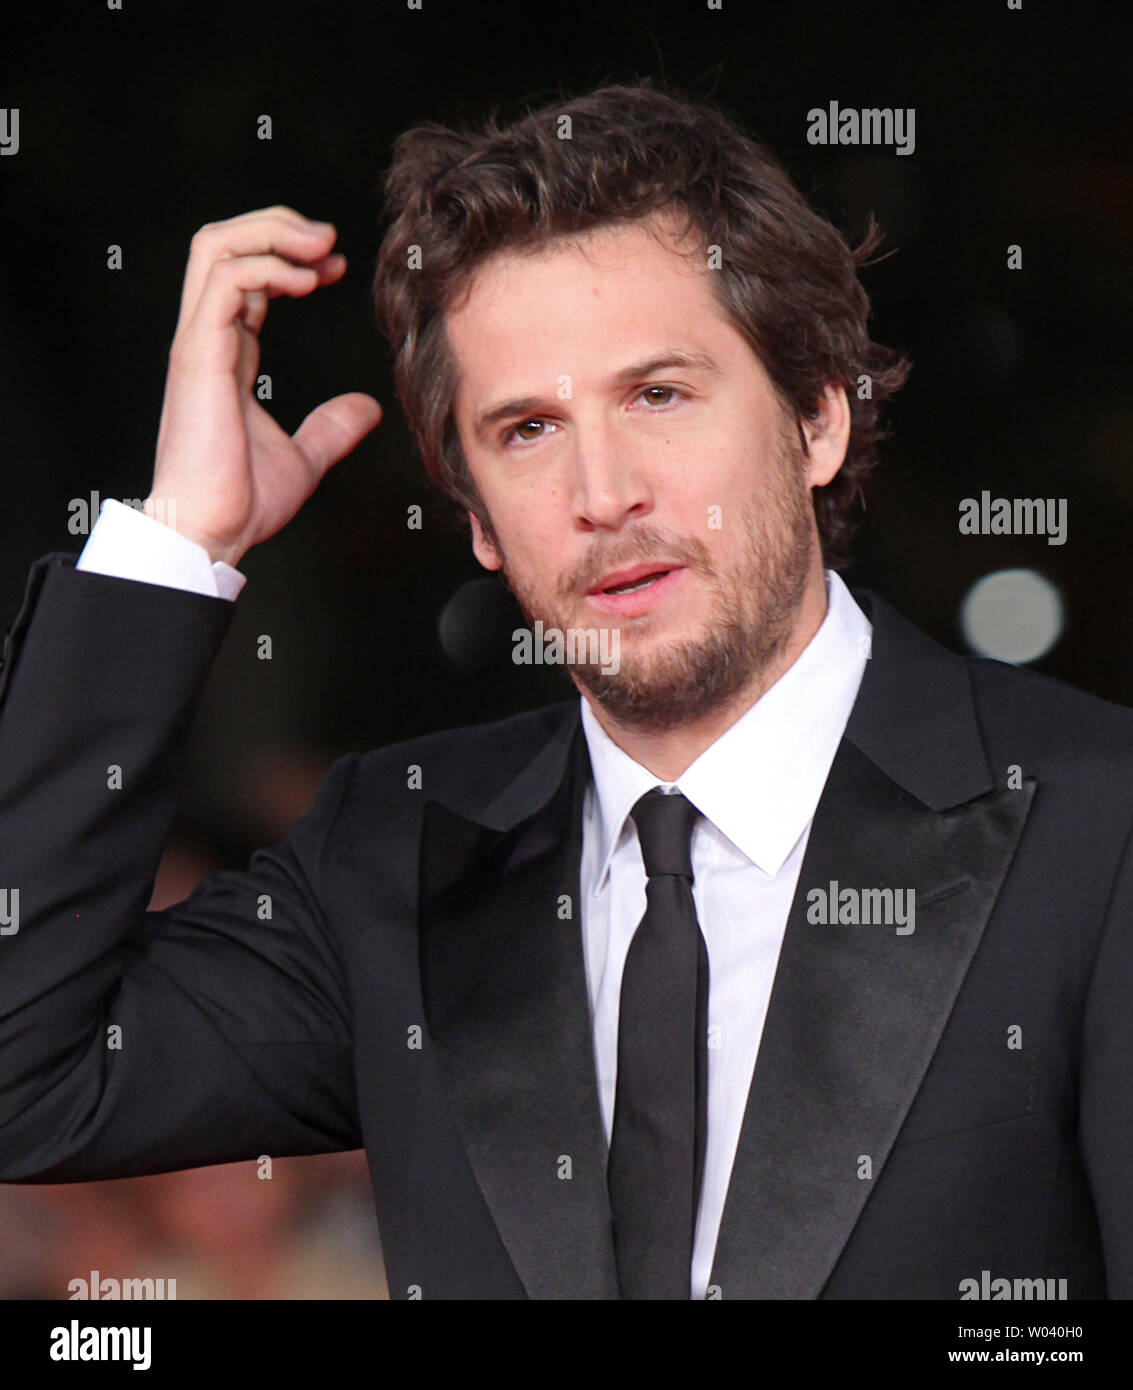 Guillaume Canet arrives on the red carpet before the screening of a digitally restored version of the 1960 classic film 'La Dolce Vita' during the 5th Rome International Film Festival in Rome on October 30, 2010.   UPI/David Silpa - Stock Image